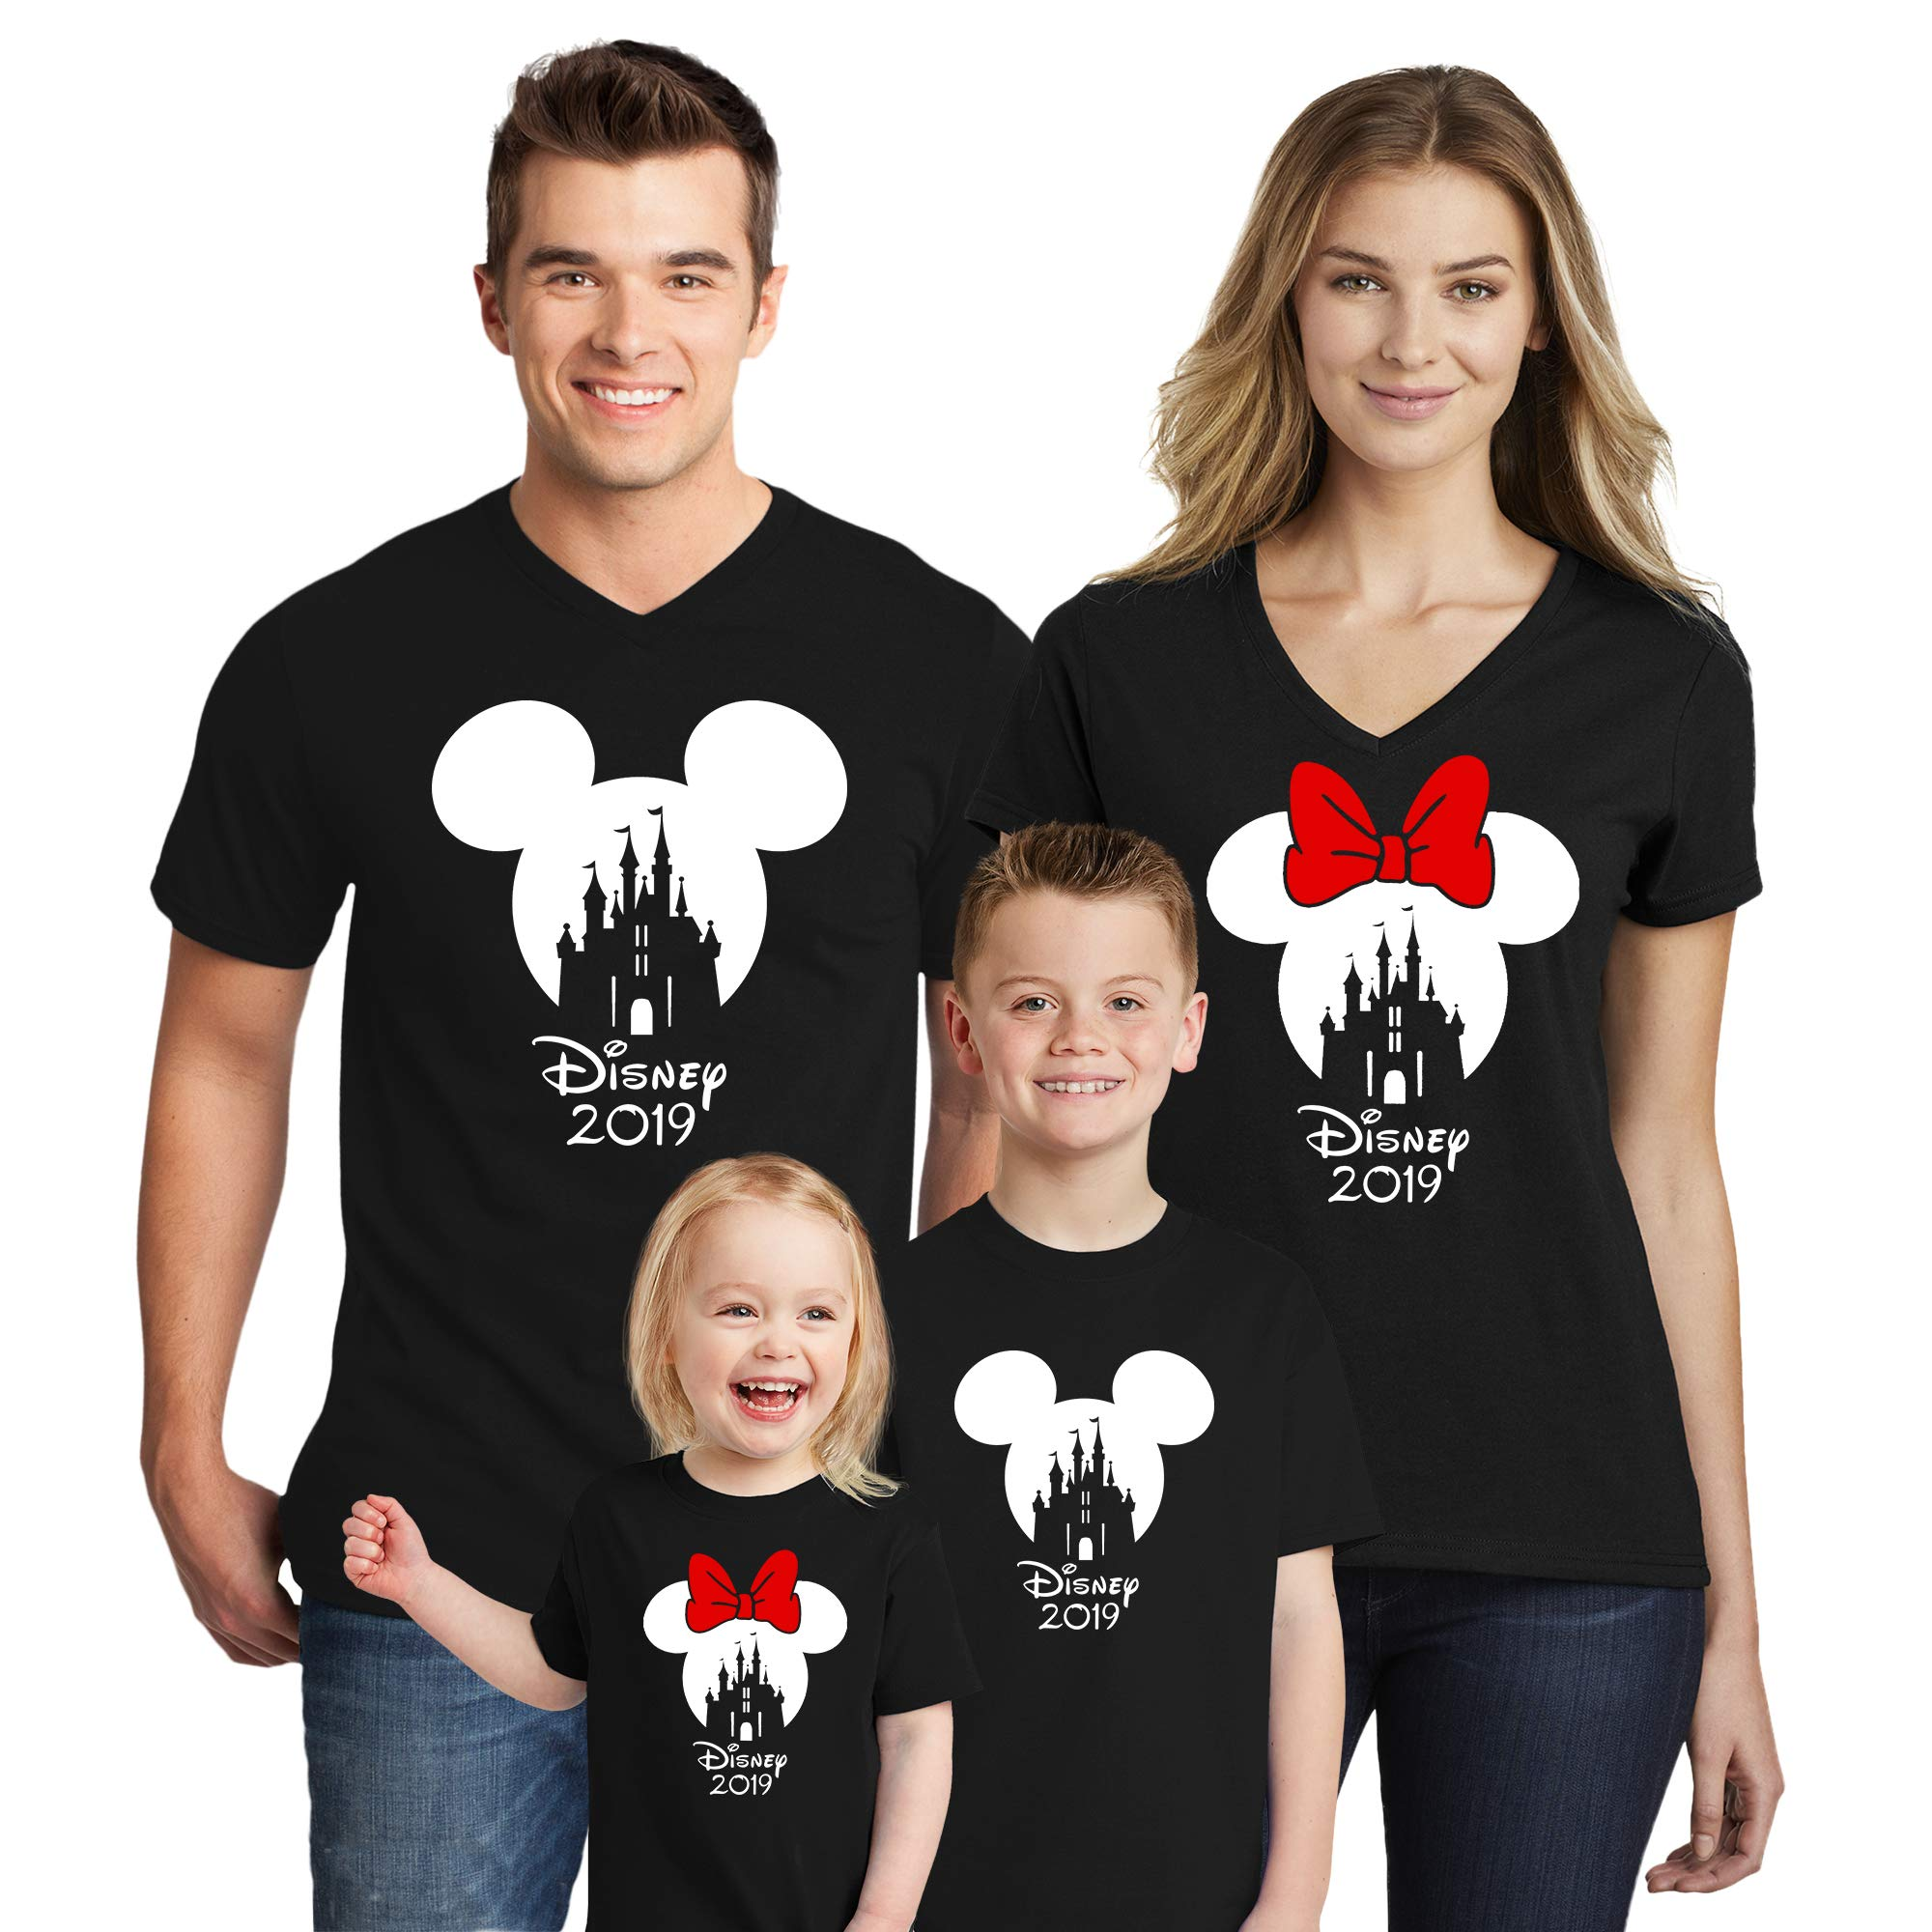 Natural Underwear Family Trip #2 Castle with 2019 T-Shirts Shirts Trip Mouse V Neck T Shirts Black Youth Girls Large by Natural Underwear